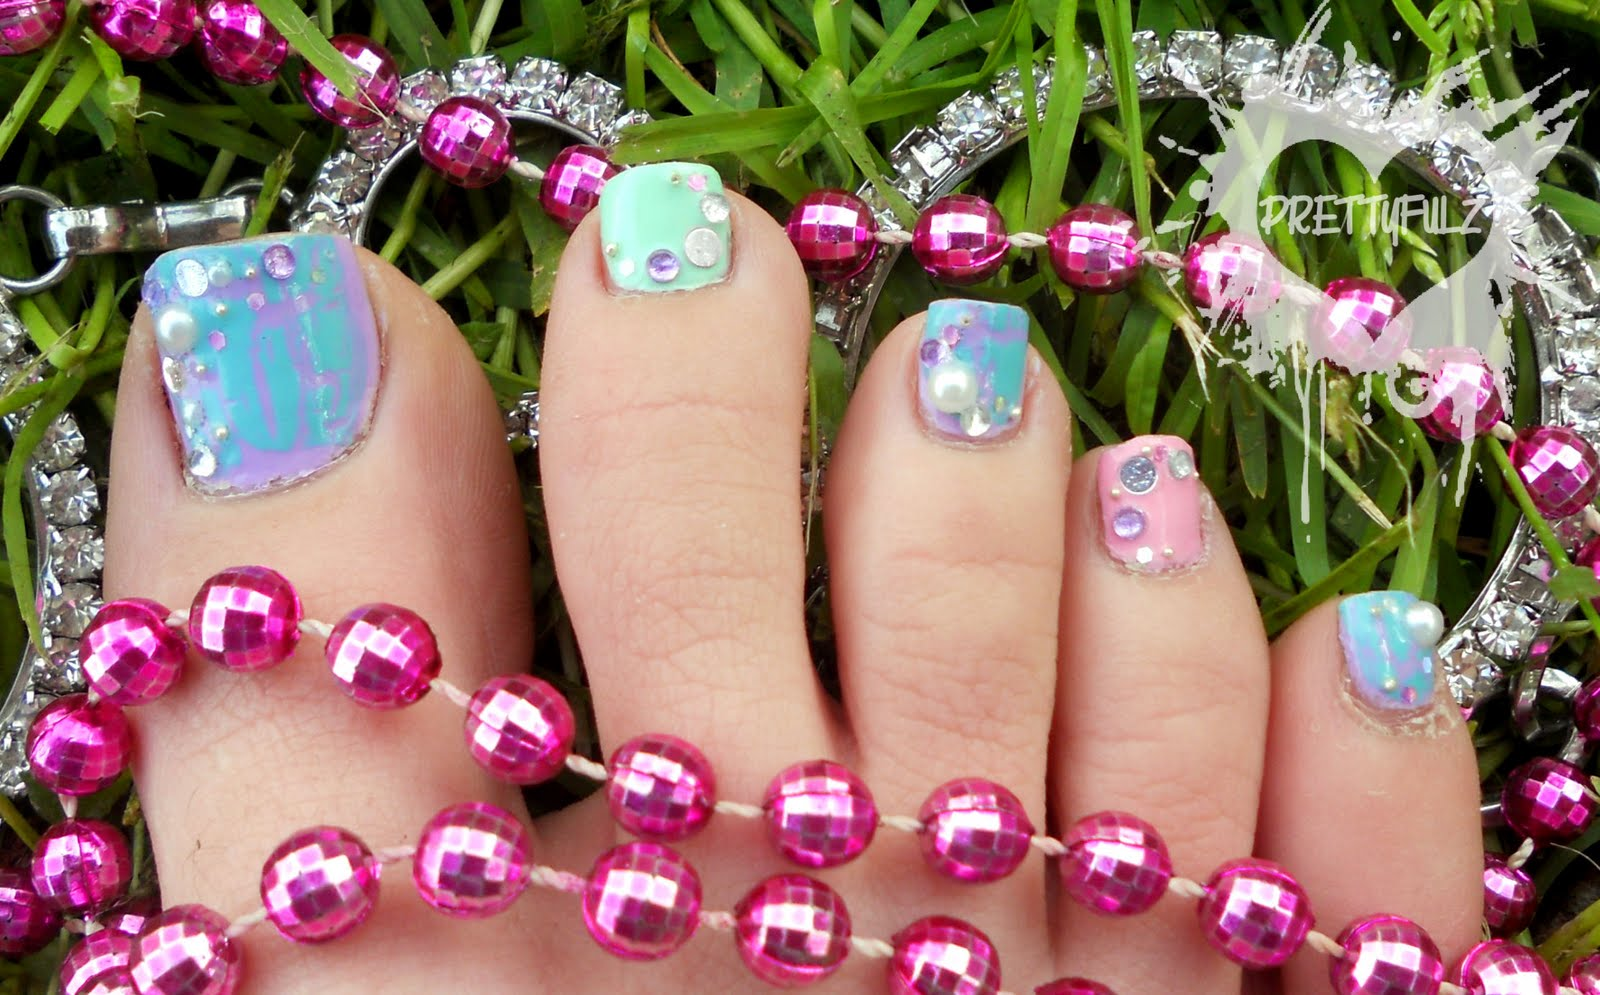 Prettyfulz pastel colored pedicure nail art design pastel colored pedicure nail art design prinsesfo Image collections